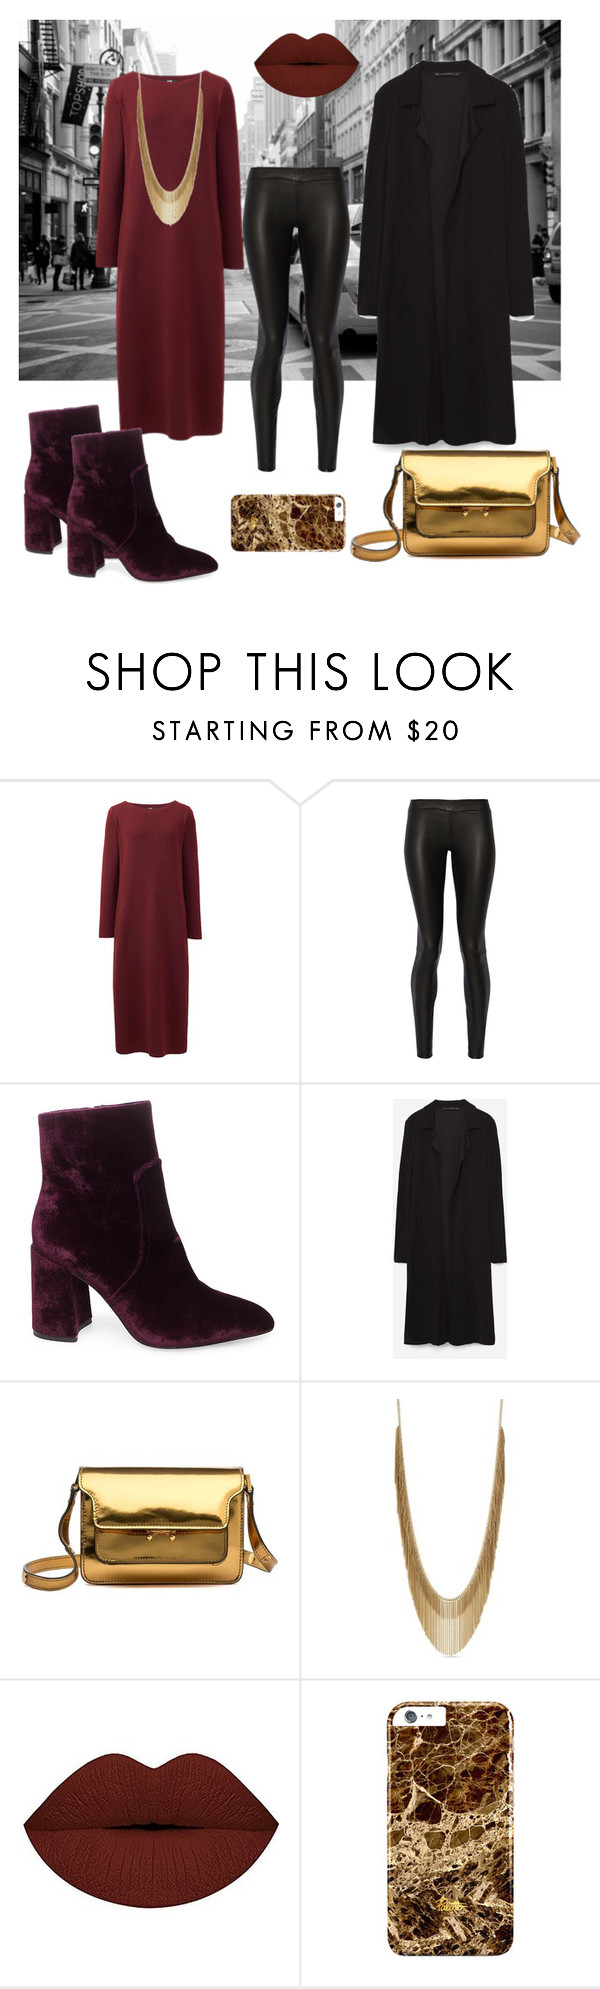 """Autumn 2016 trends"" by ler0306 ❤ liked on Polyvore featuring Uniqlo, The Row, Steve Madden, Marni and BCBGeneration"